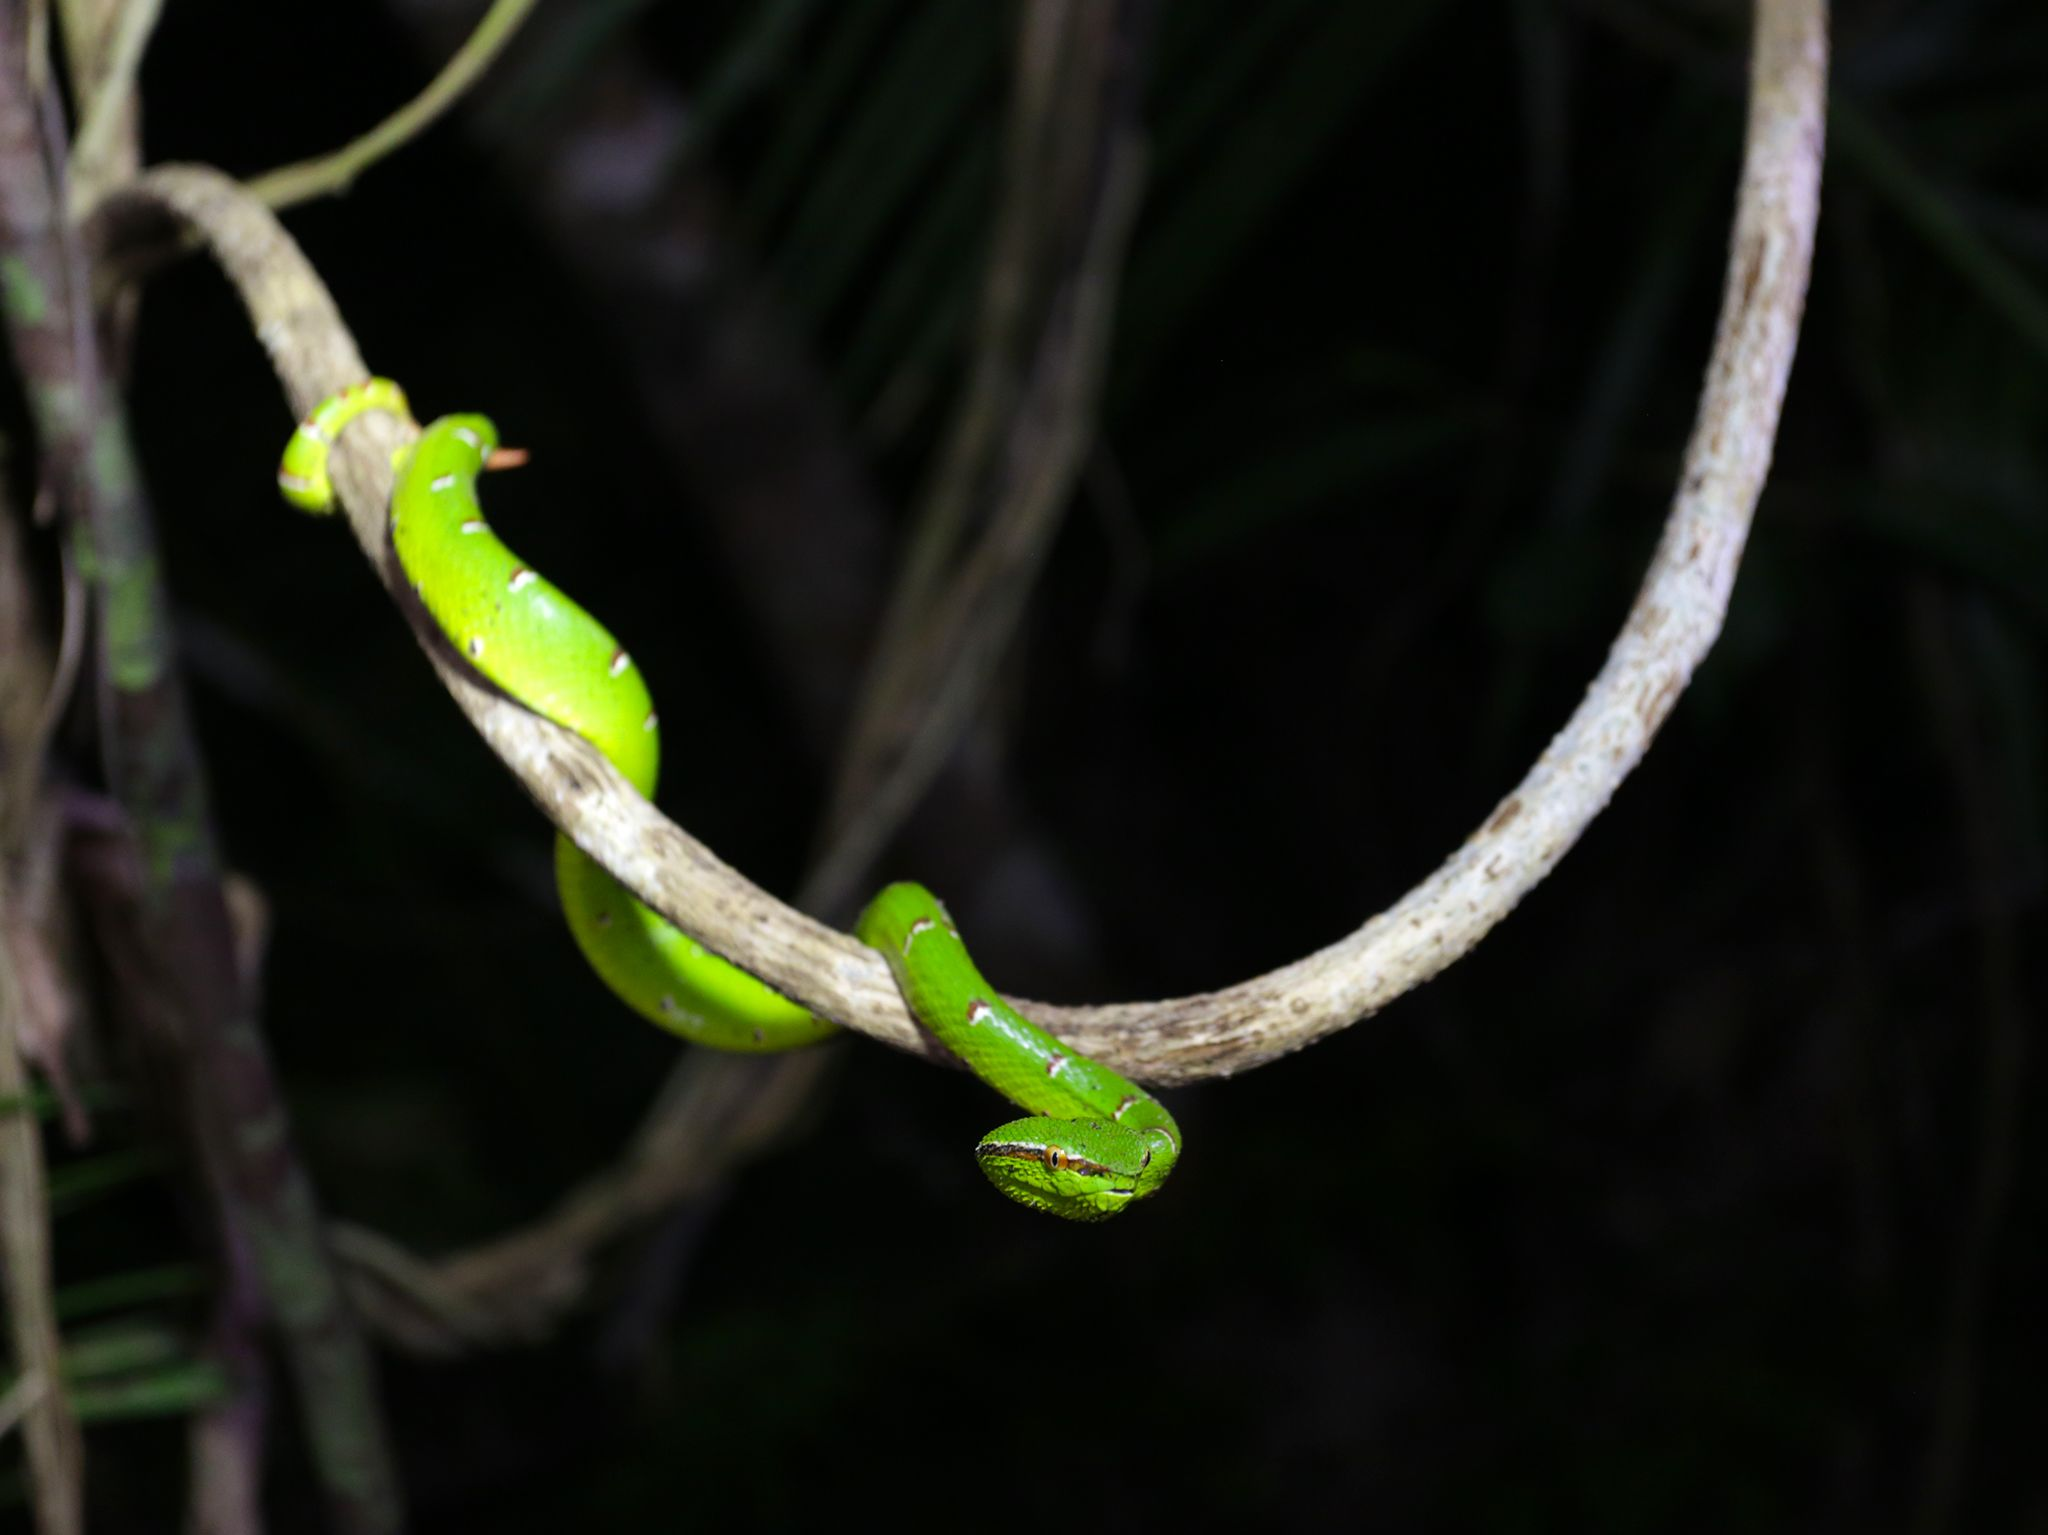 Palawan, Philippines:  Palawan pit viper.  This image is from Untamed Philippines. [Photo of the day - June 2020]